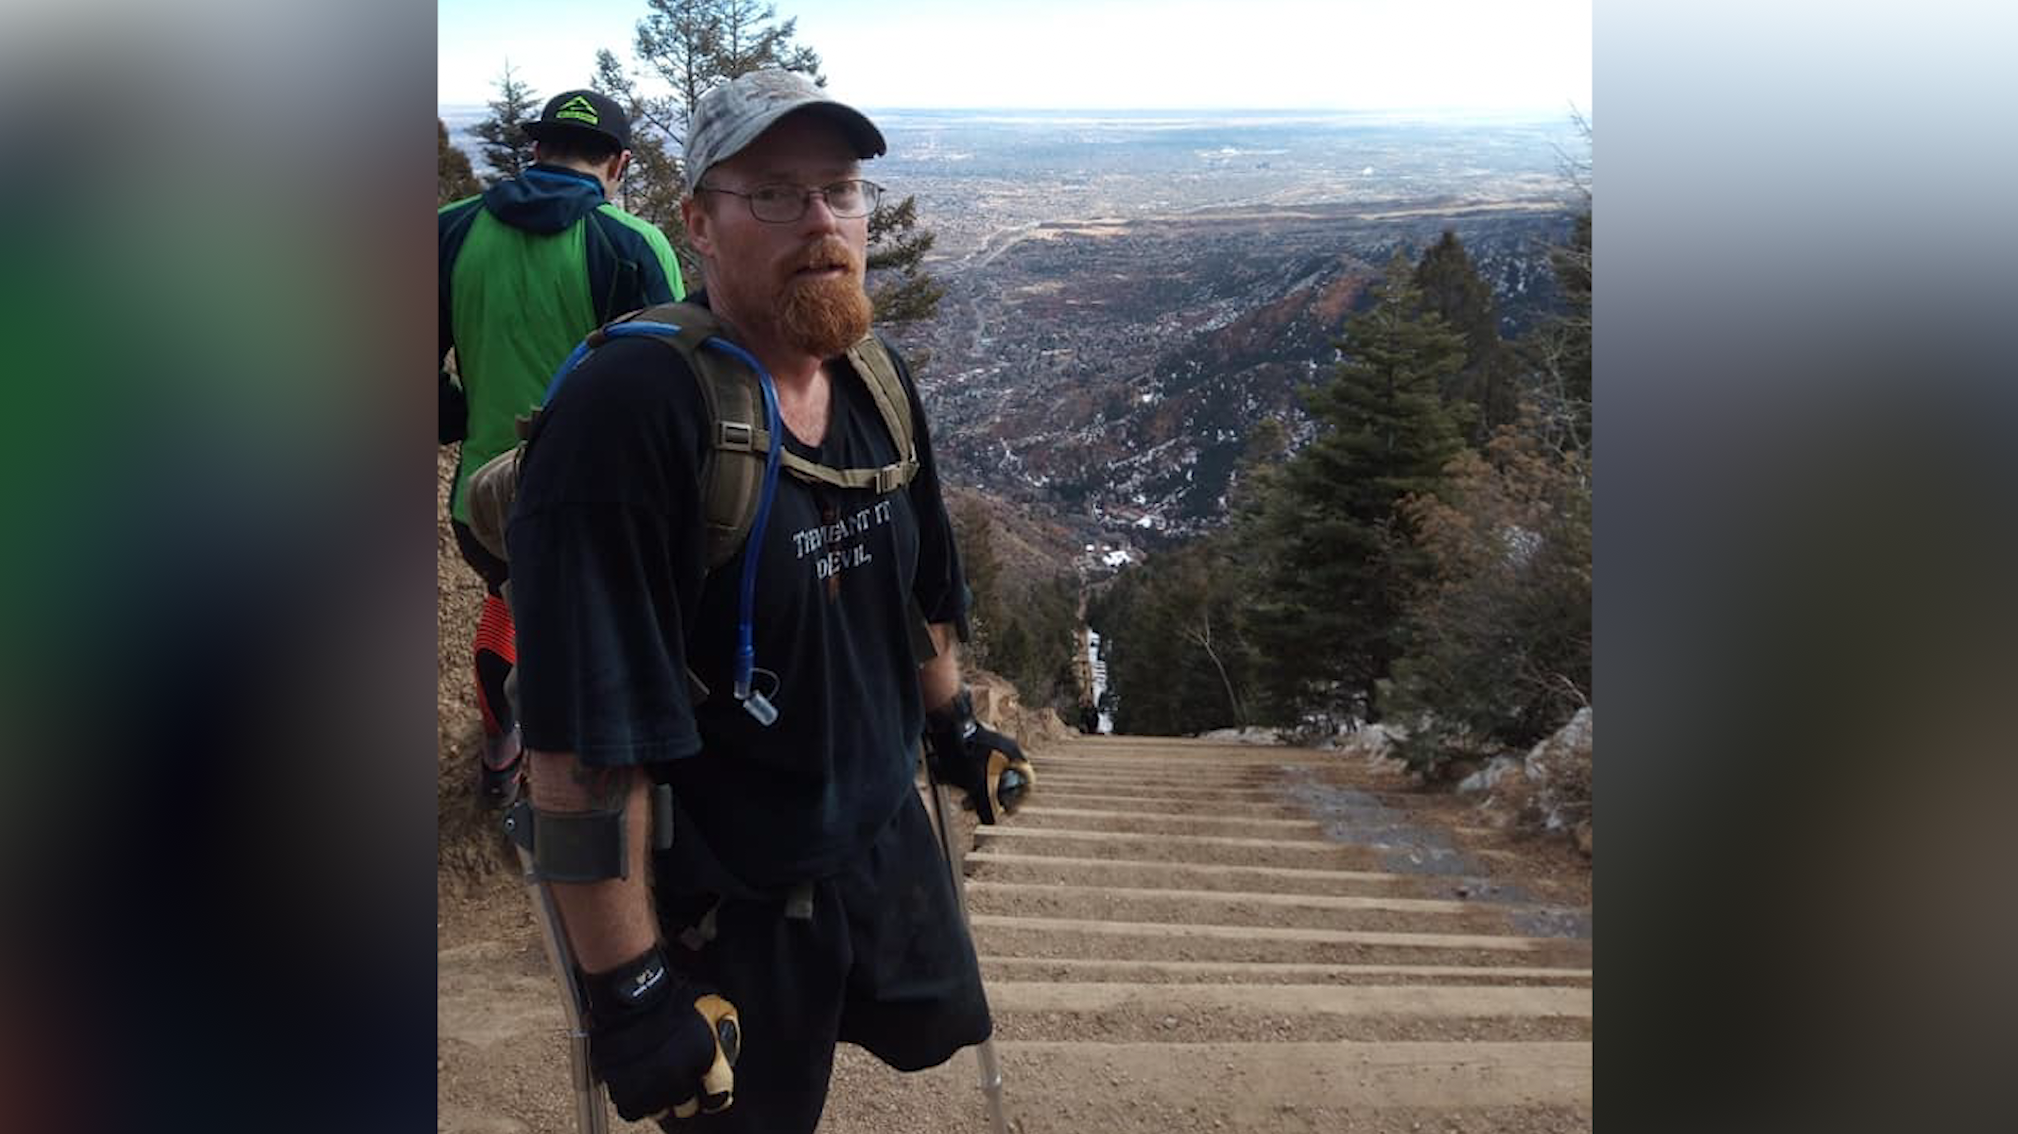 Jerrod Evans at the top of the Manitou Incline, Facebook